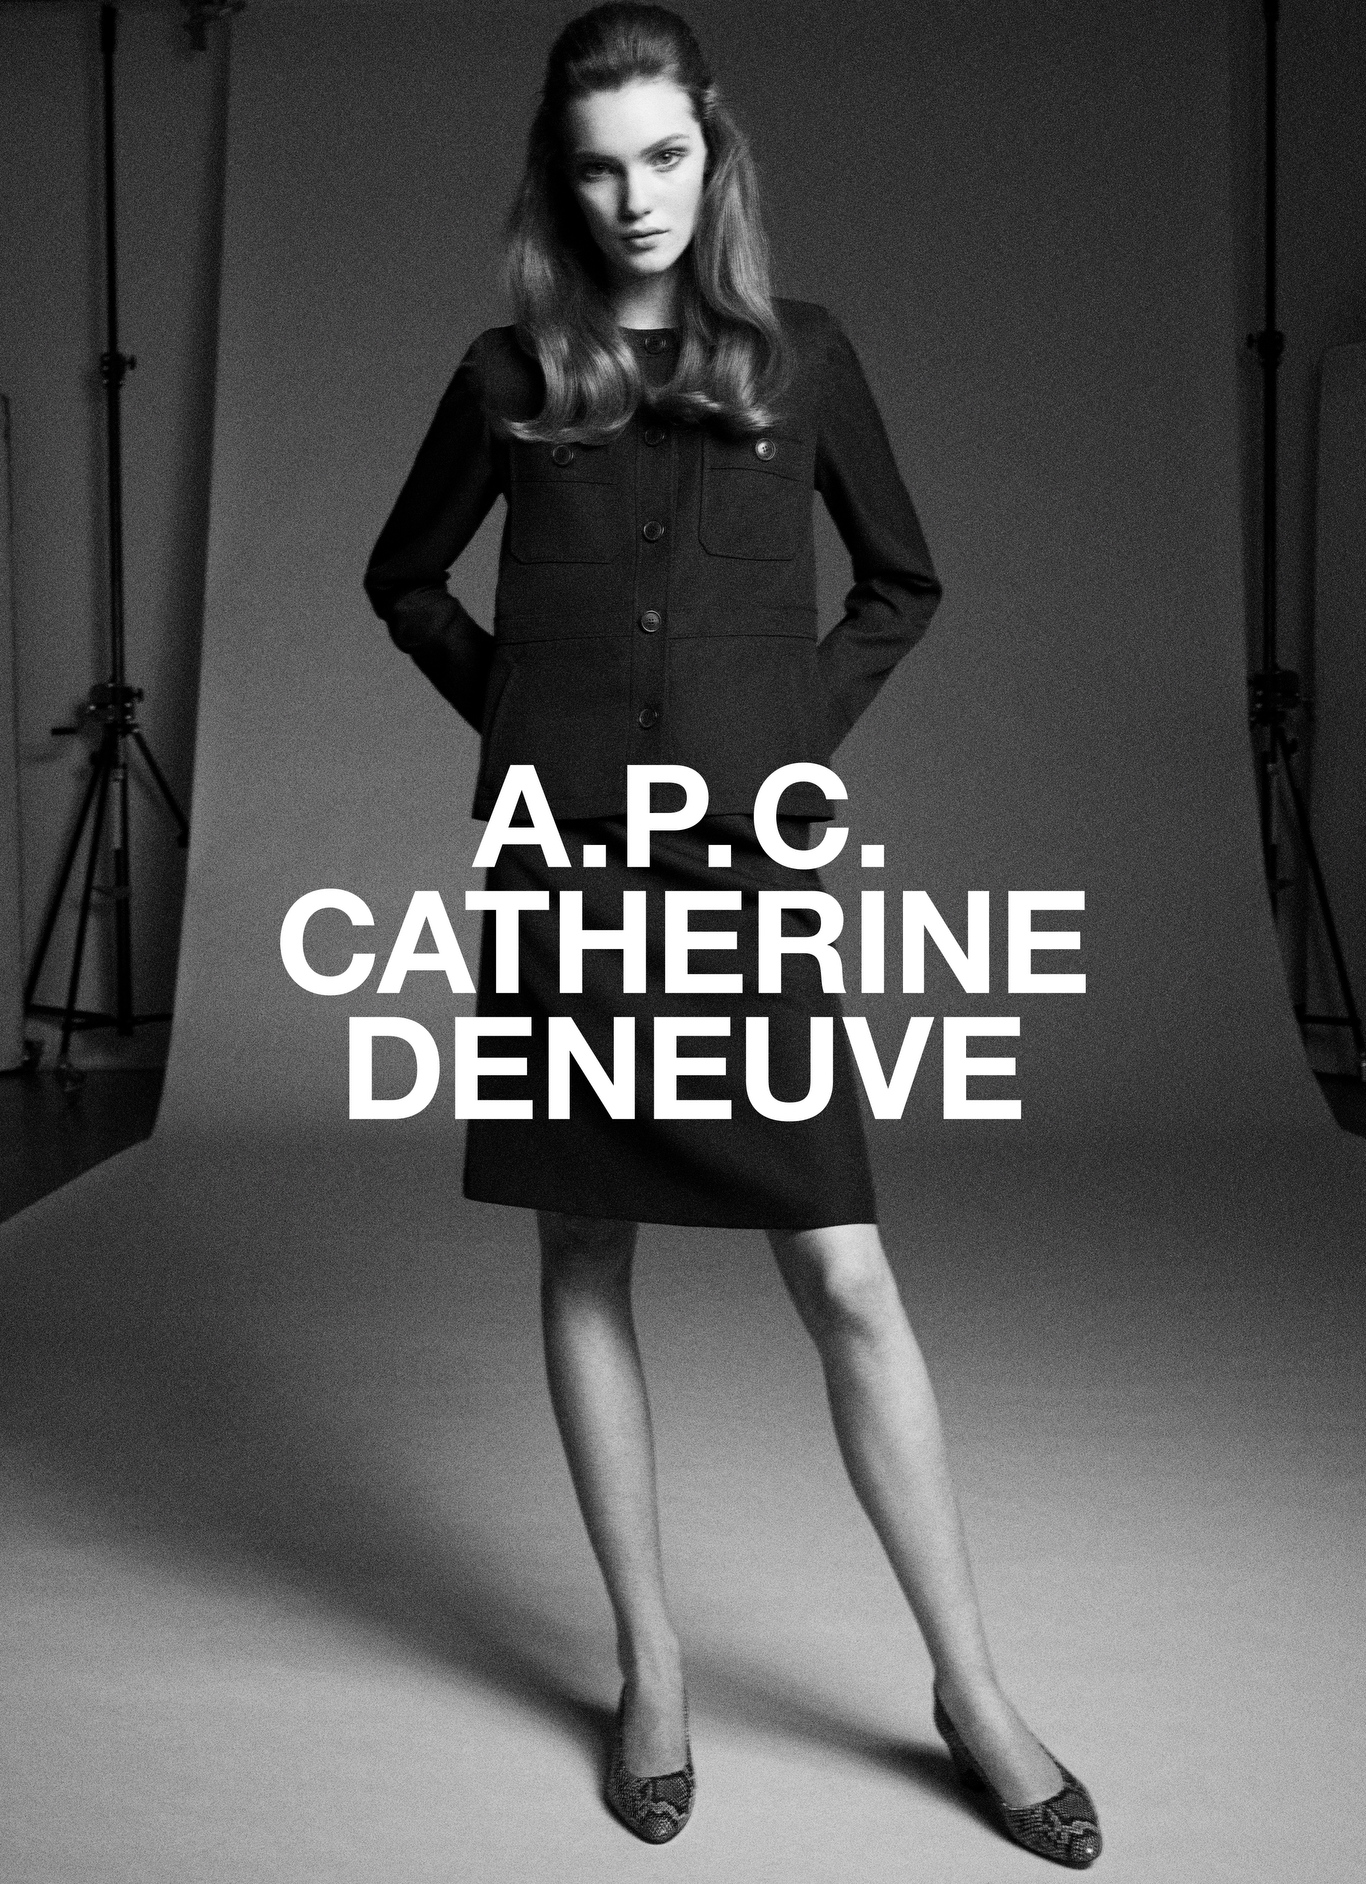 The A.P.C. Catherine Deneuve campaign